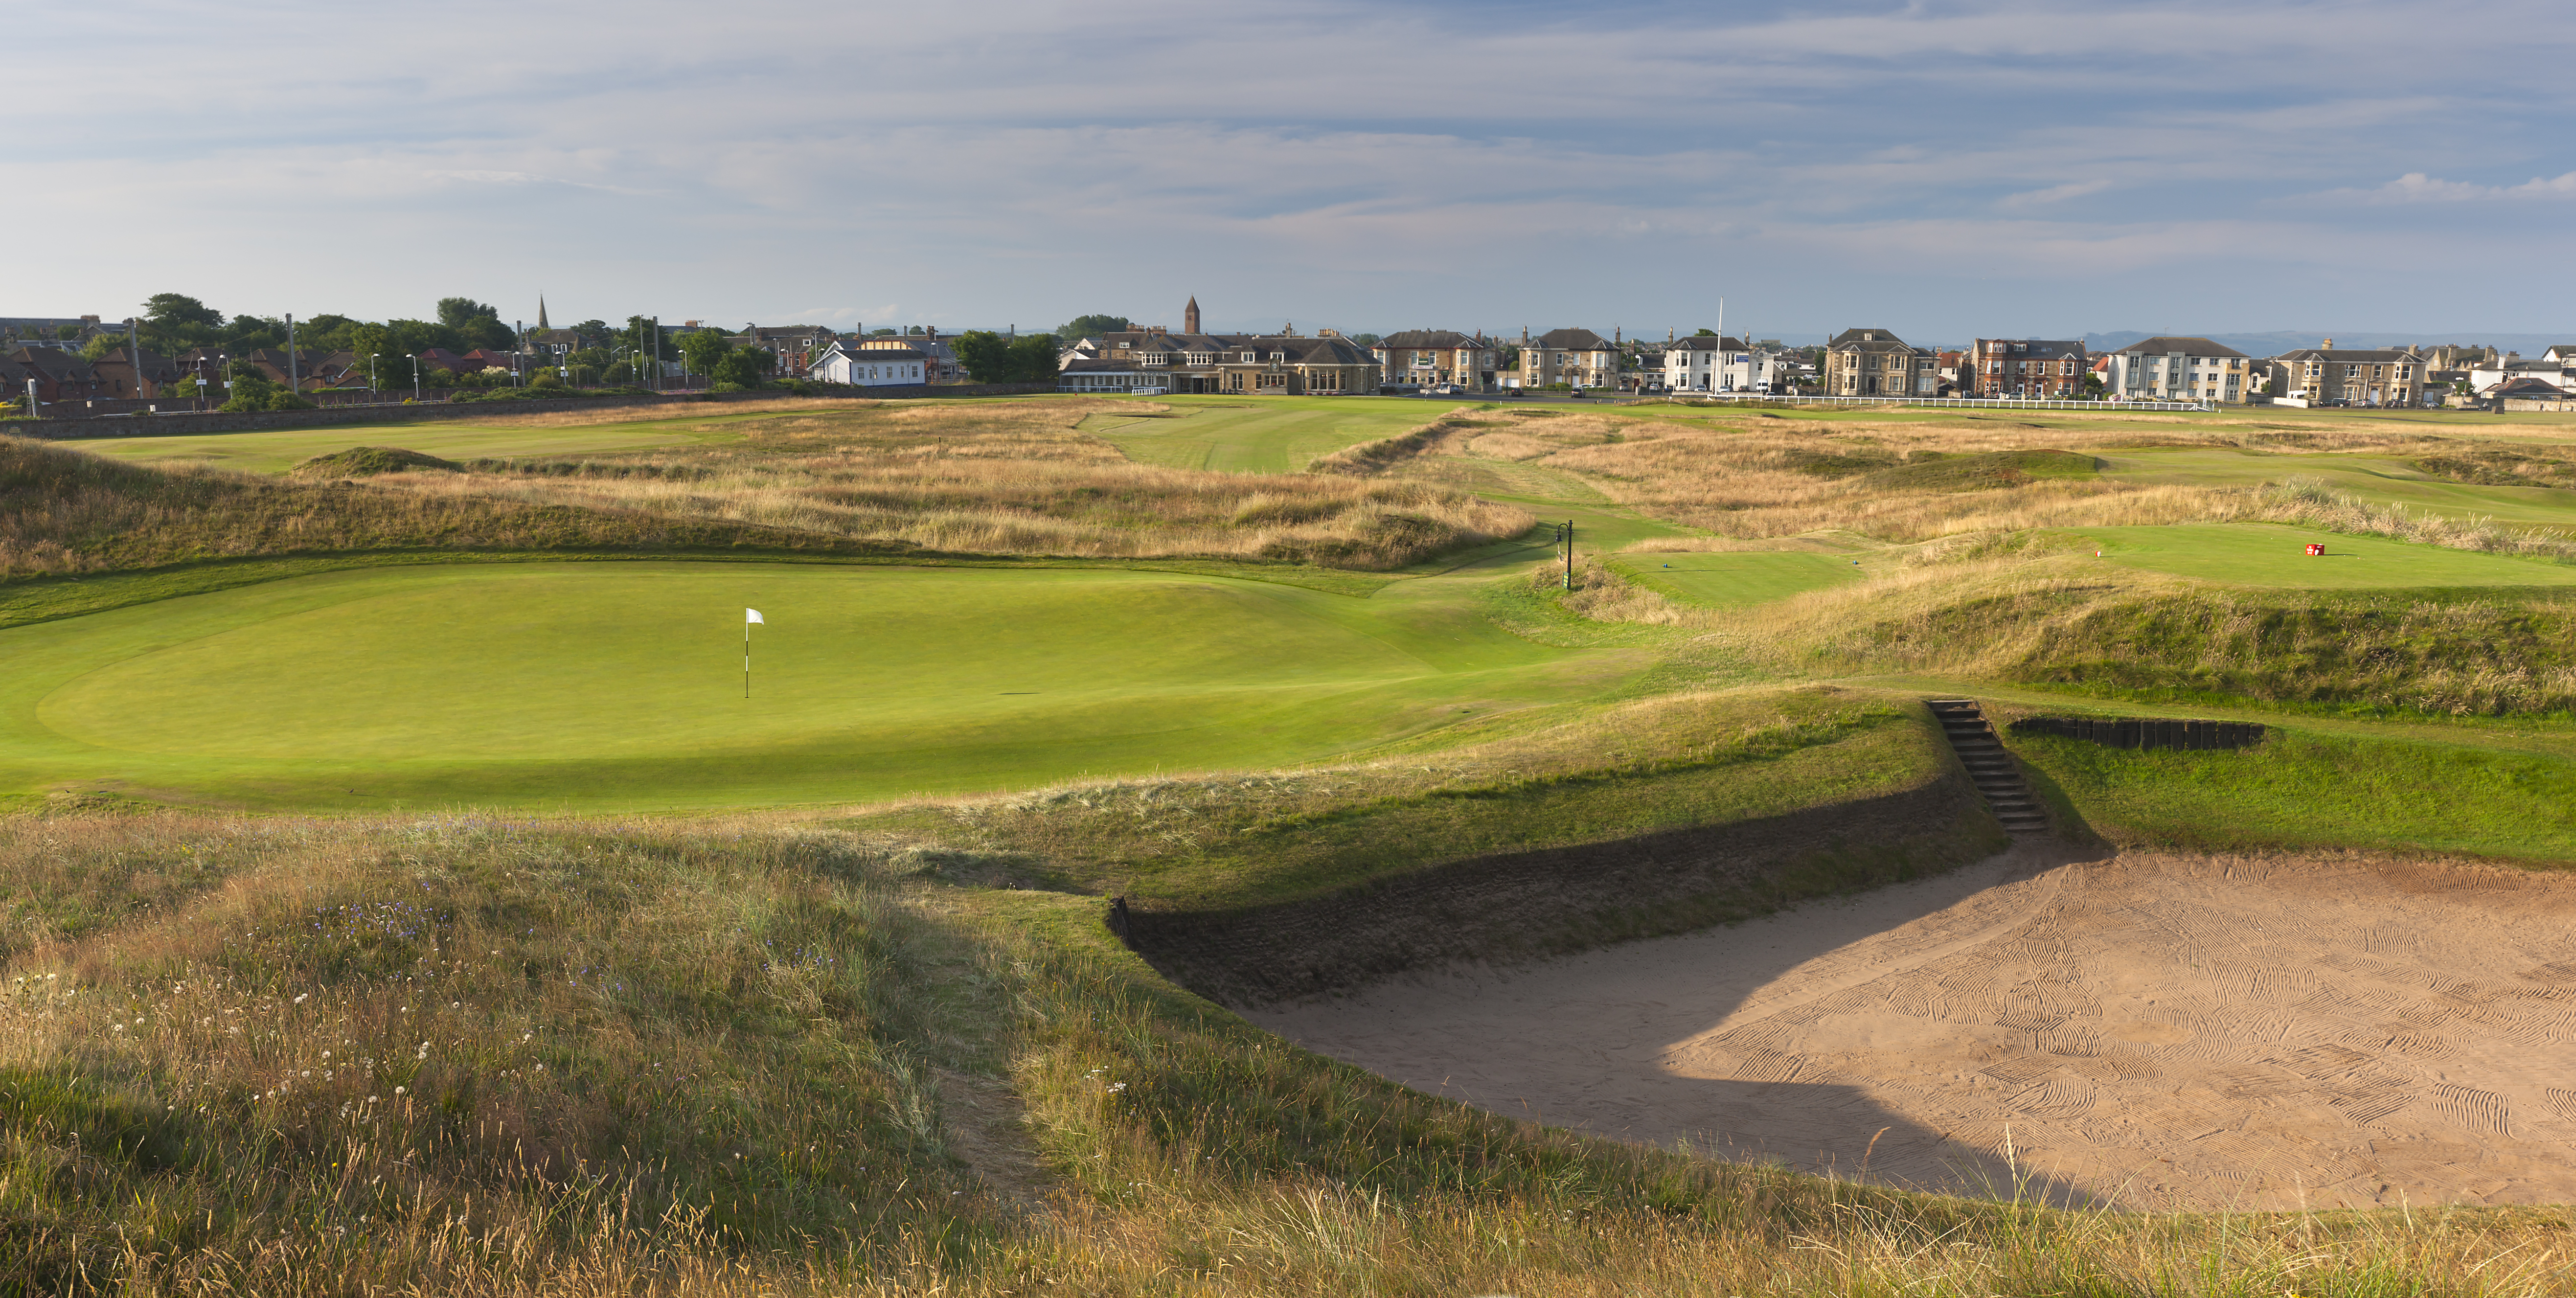 Overview of golf course named Prestwick Golf Club